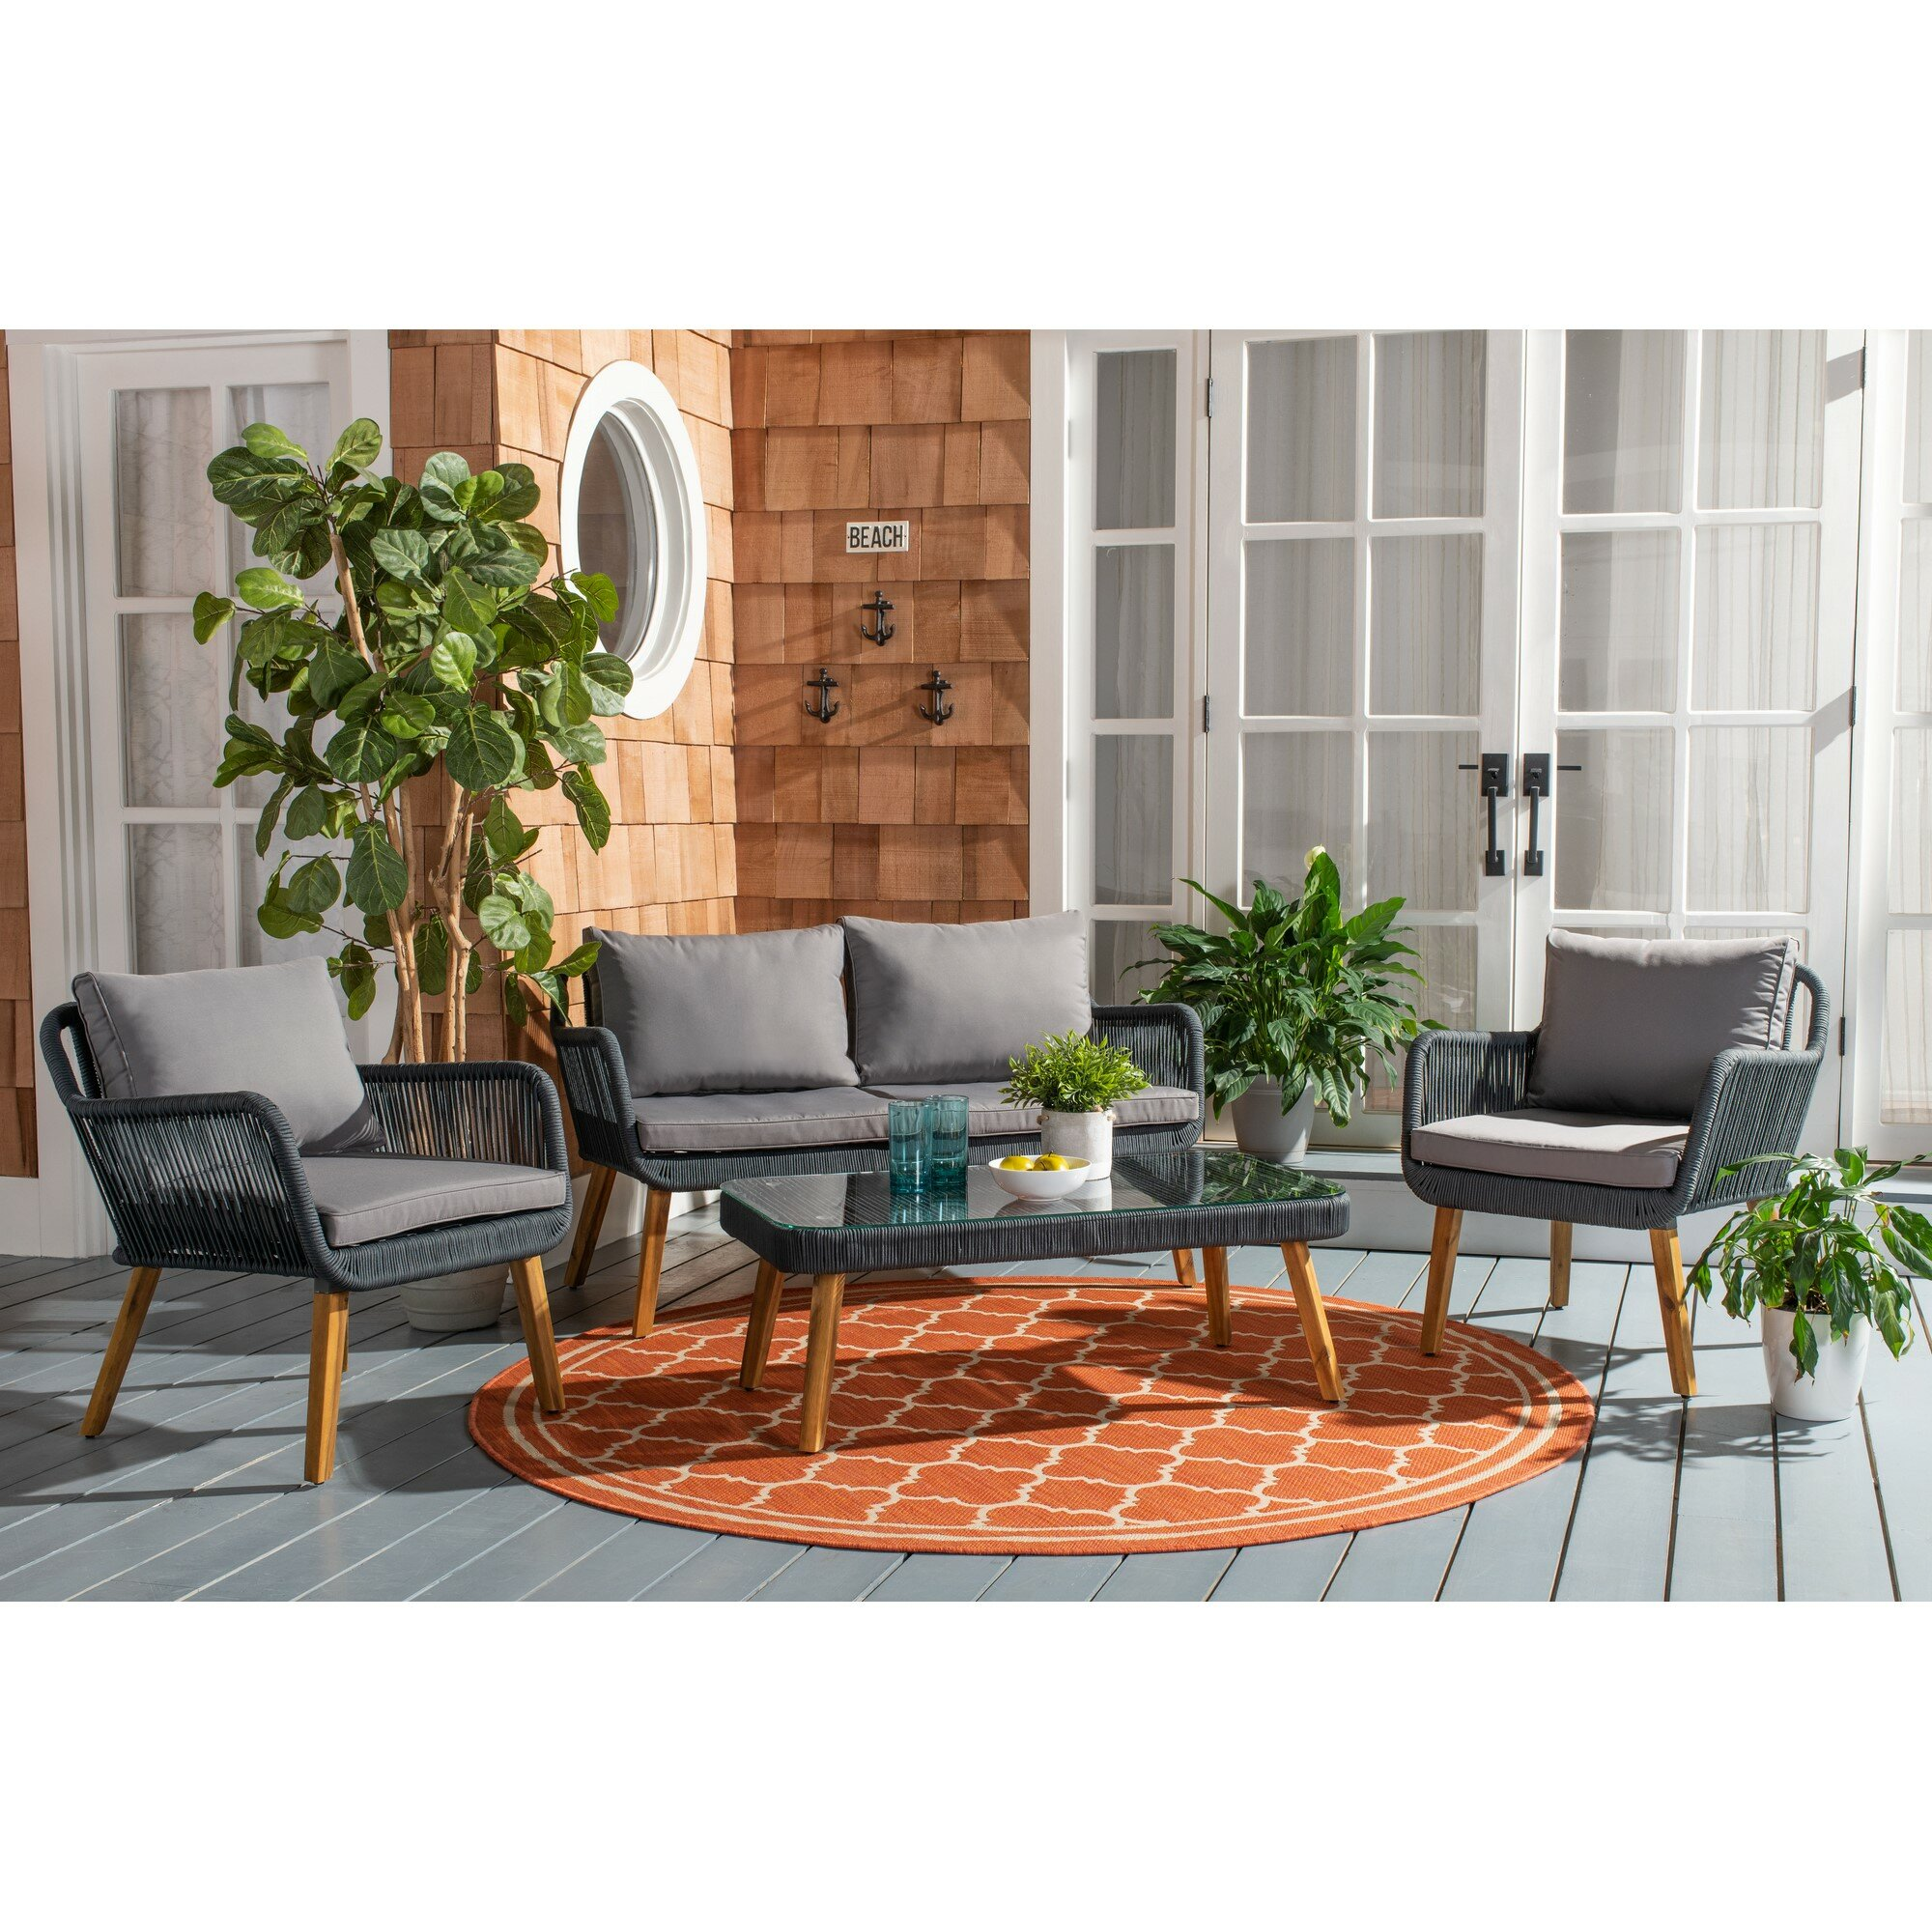 Astounding Fletcher 4 Piece Sofa Seating Group With Cushions Ibusinesslaw Wood Chair Design Ideas Ibusinesslaworg